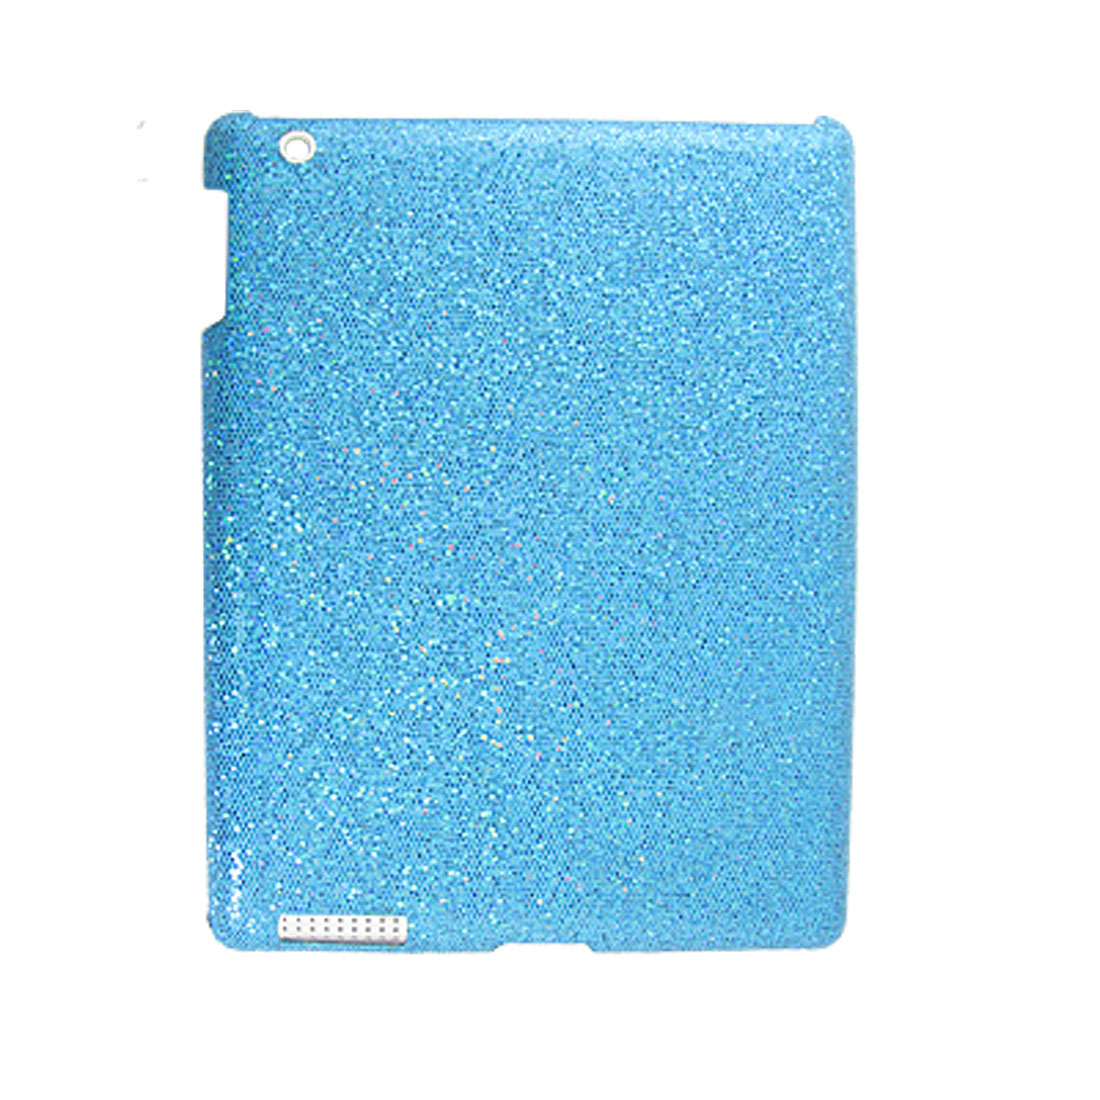 Sky Blue Hard Plastic Glittery Back Caase for iPad 2G